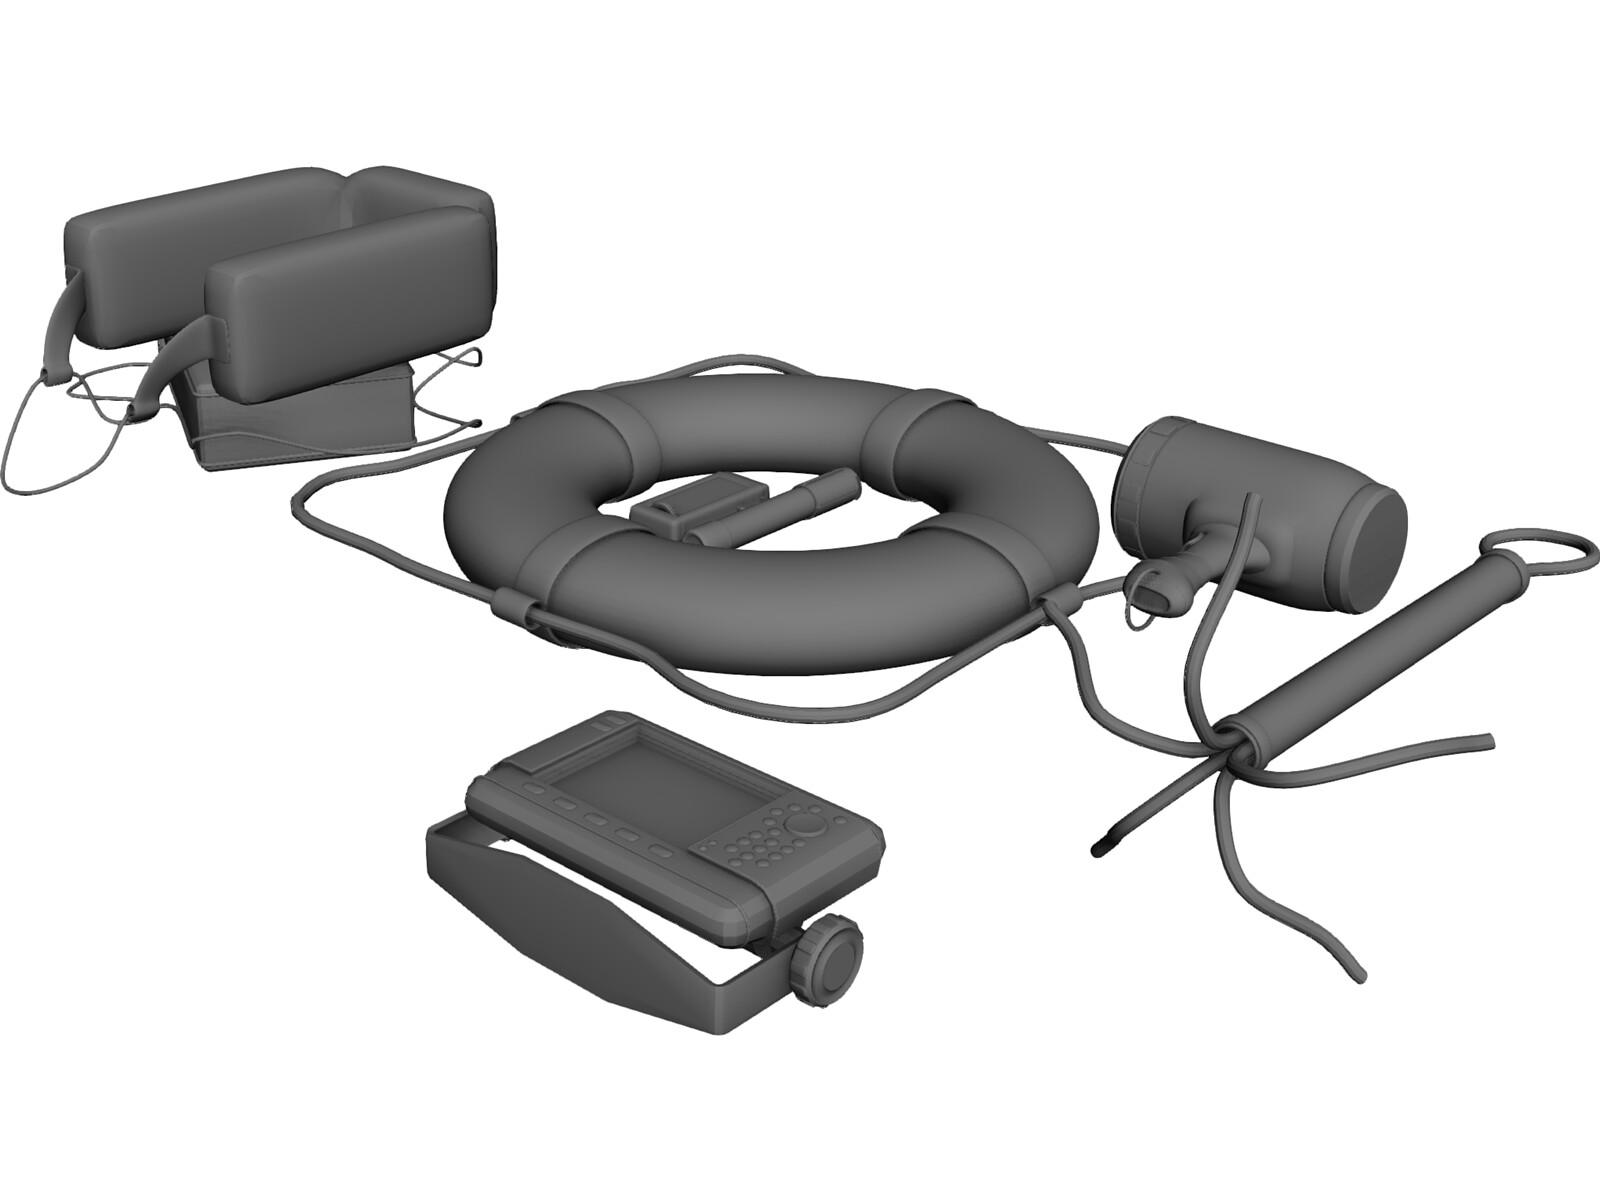 Boating Supply (Safety Equipment) 3D Model